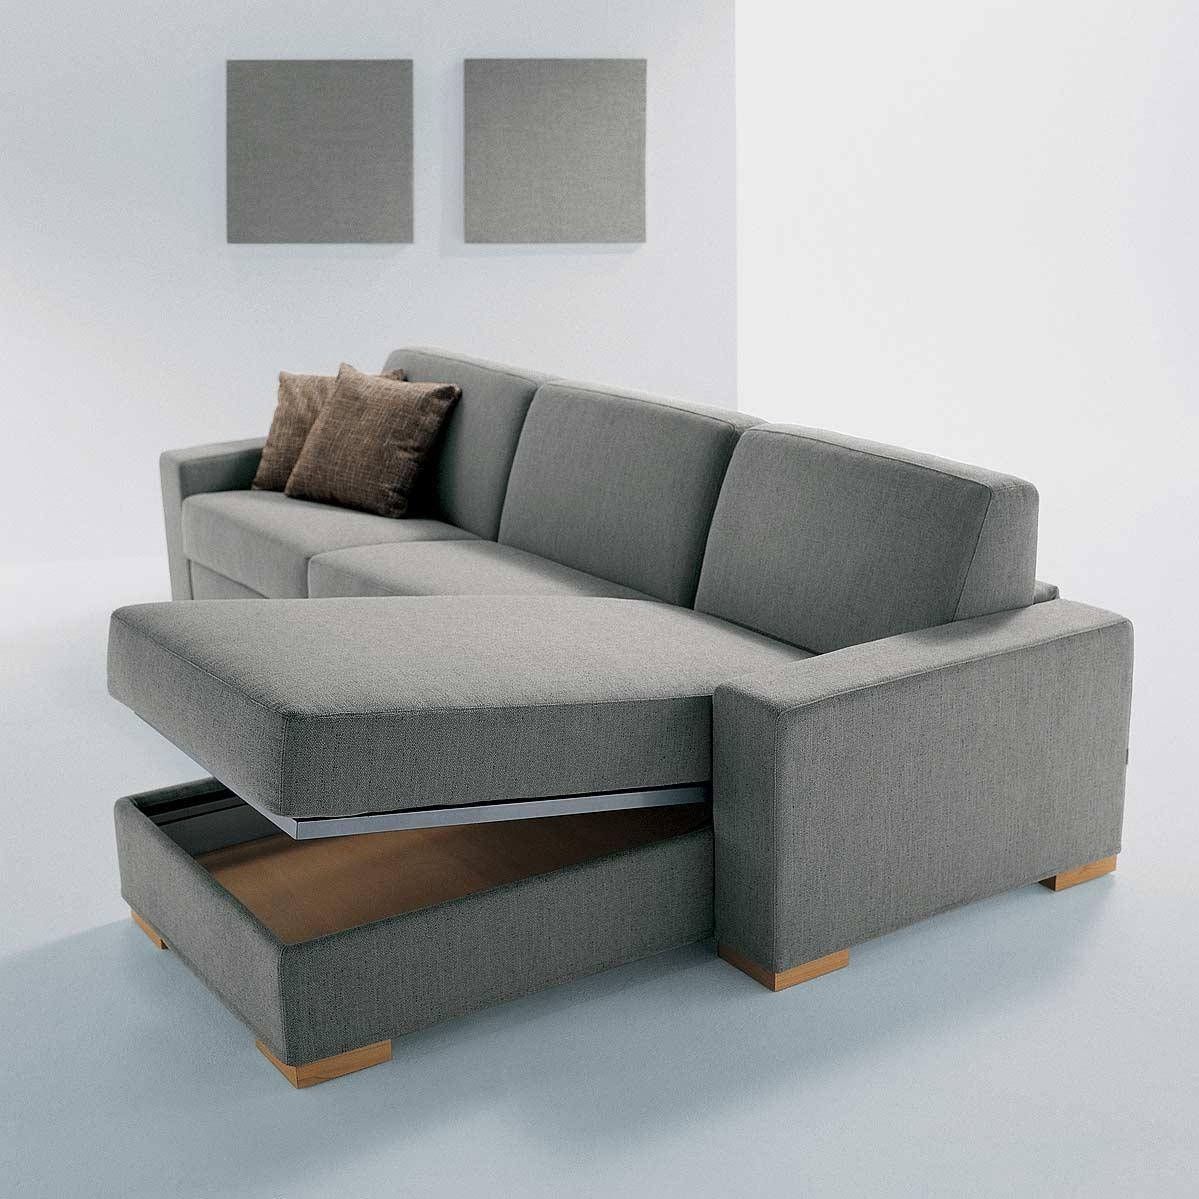 The Duke Sectional Sofa With Storage Has Everything You Need – Tevami With Regard To Sectional Sofa With Storage (Image 19 of 20)